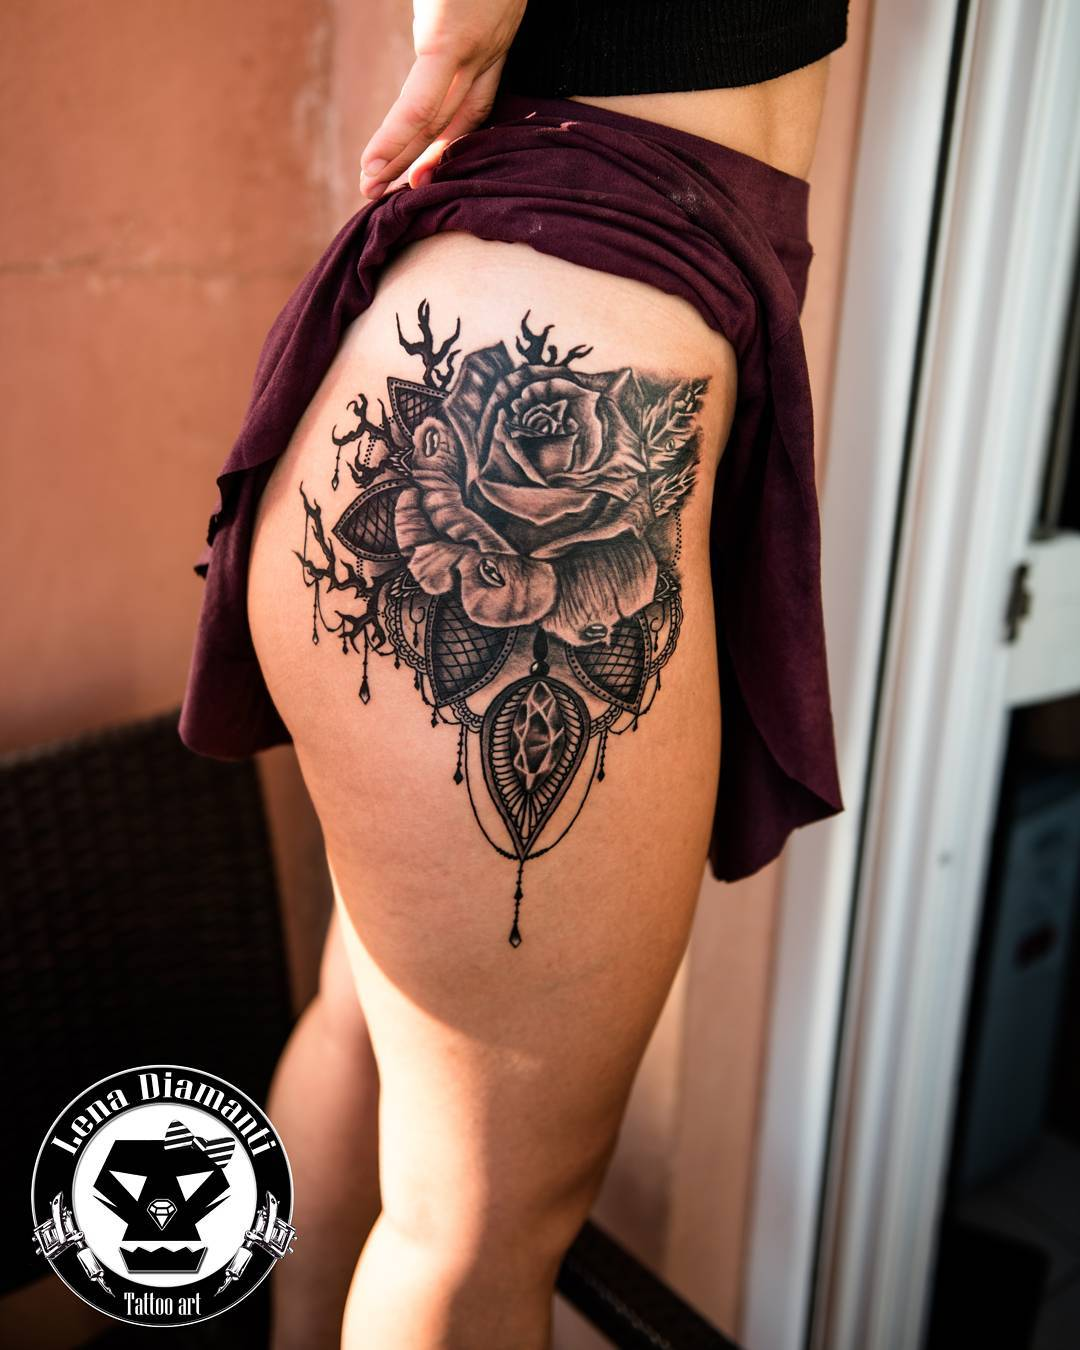 Black Ink Rose Tattoo On Girl Right Hip: 75 Best Rose Tattoos For Women And Men To Ink